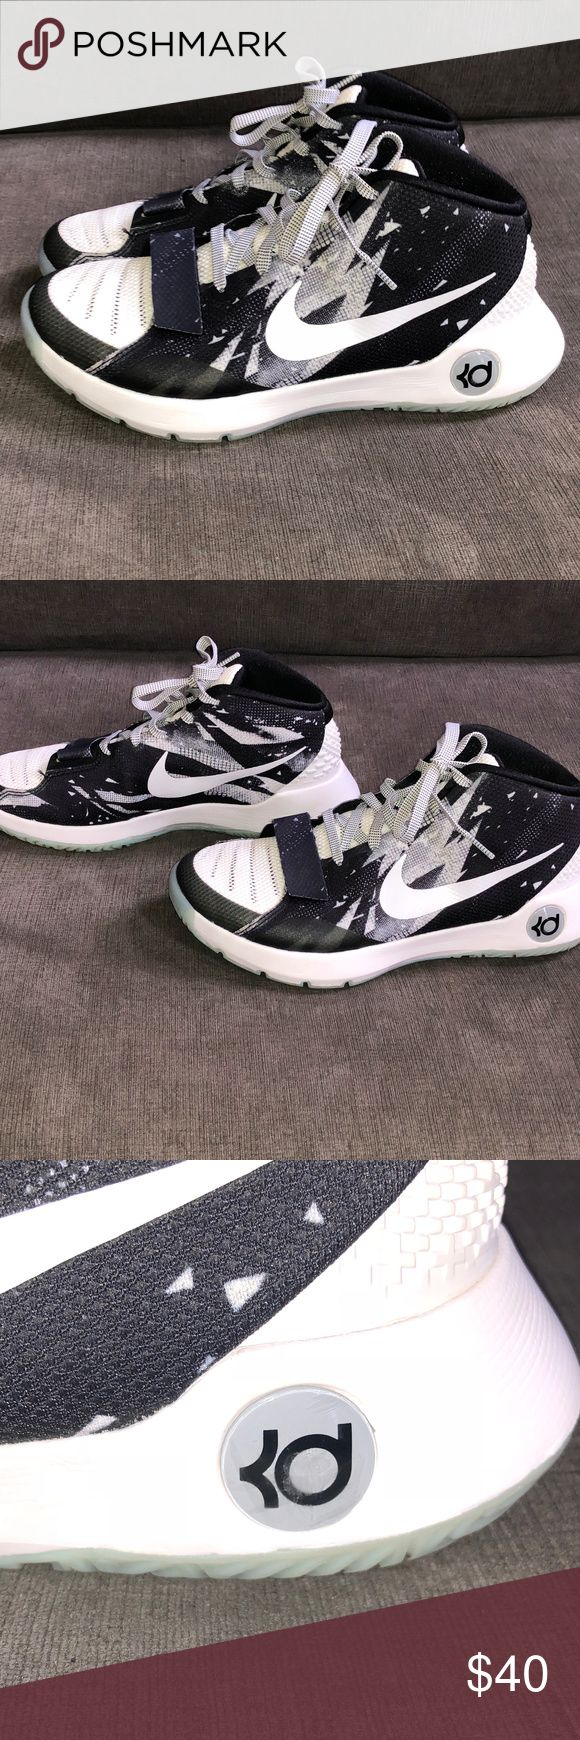 Nike Men's KD Kevin Durant Basketball Shoes - 9 Brand: Nike Gender: Men's  Item: Basketball Shoes Style# 749379-010 Color:  Black & White Size: Men's 9 Additional Description:  KD Trey 5 III Premium Kevin Durant Basketball Shoes  Condition: Hardly Ever Worn - Excellent Condition Nike Shoes Athletic Shoes